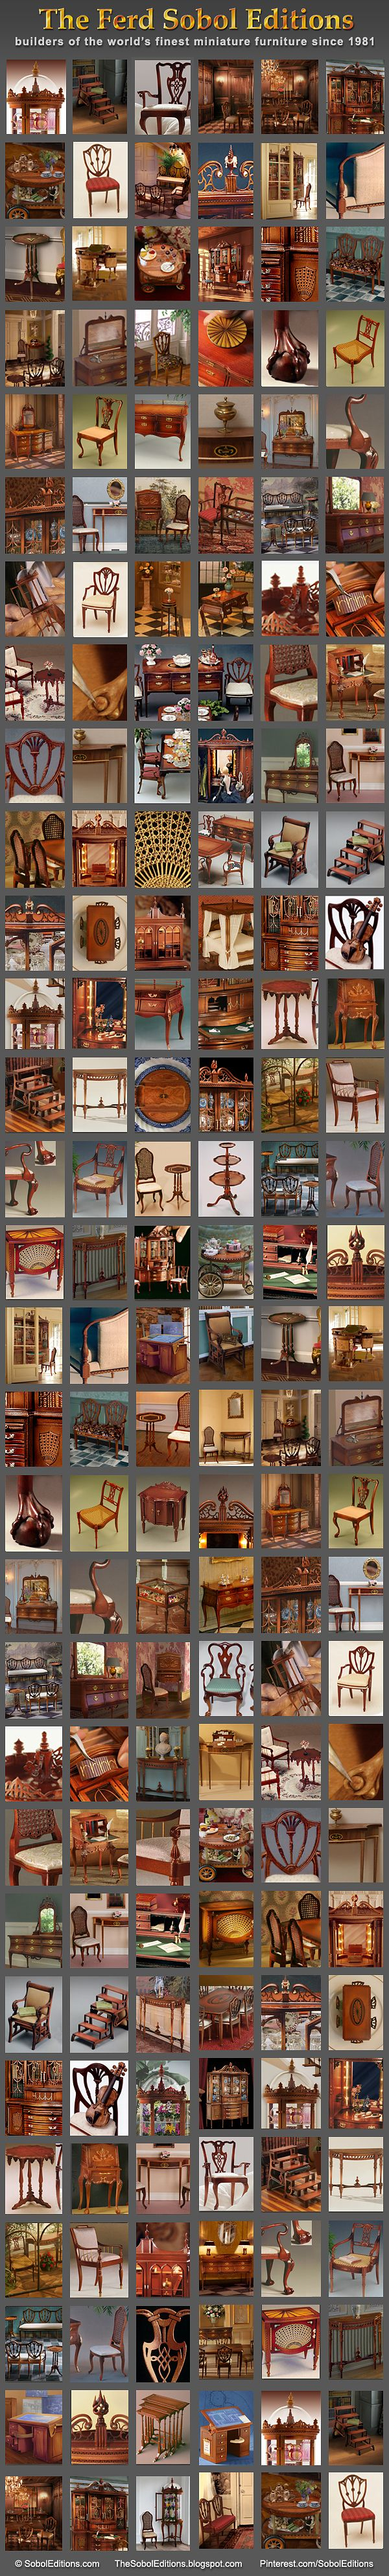 The Ferd Sobol Editions has been building some of the world's finest miniature furniture since 1981. See more at the website and at the blog: SobolEditions.com TheSobolEditions.blogspot.com